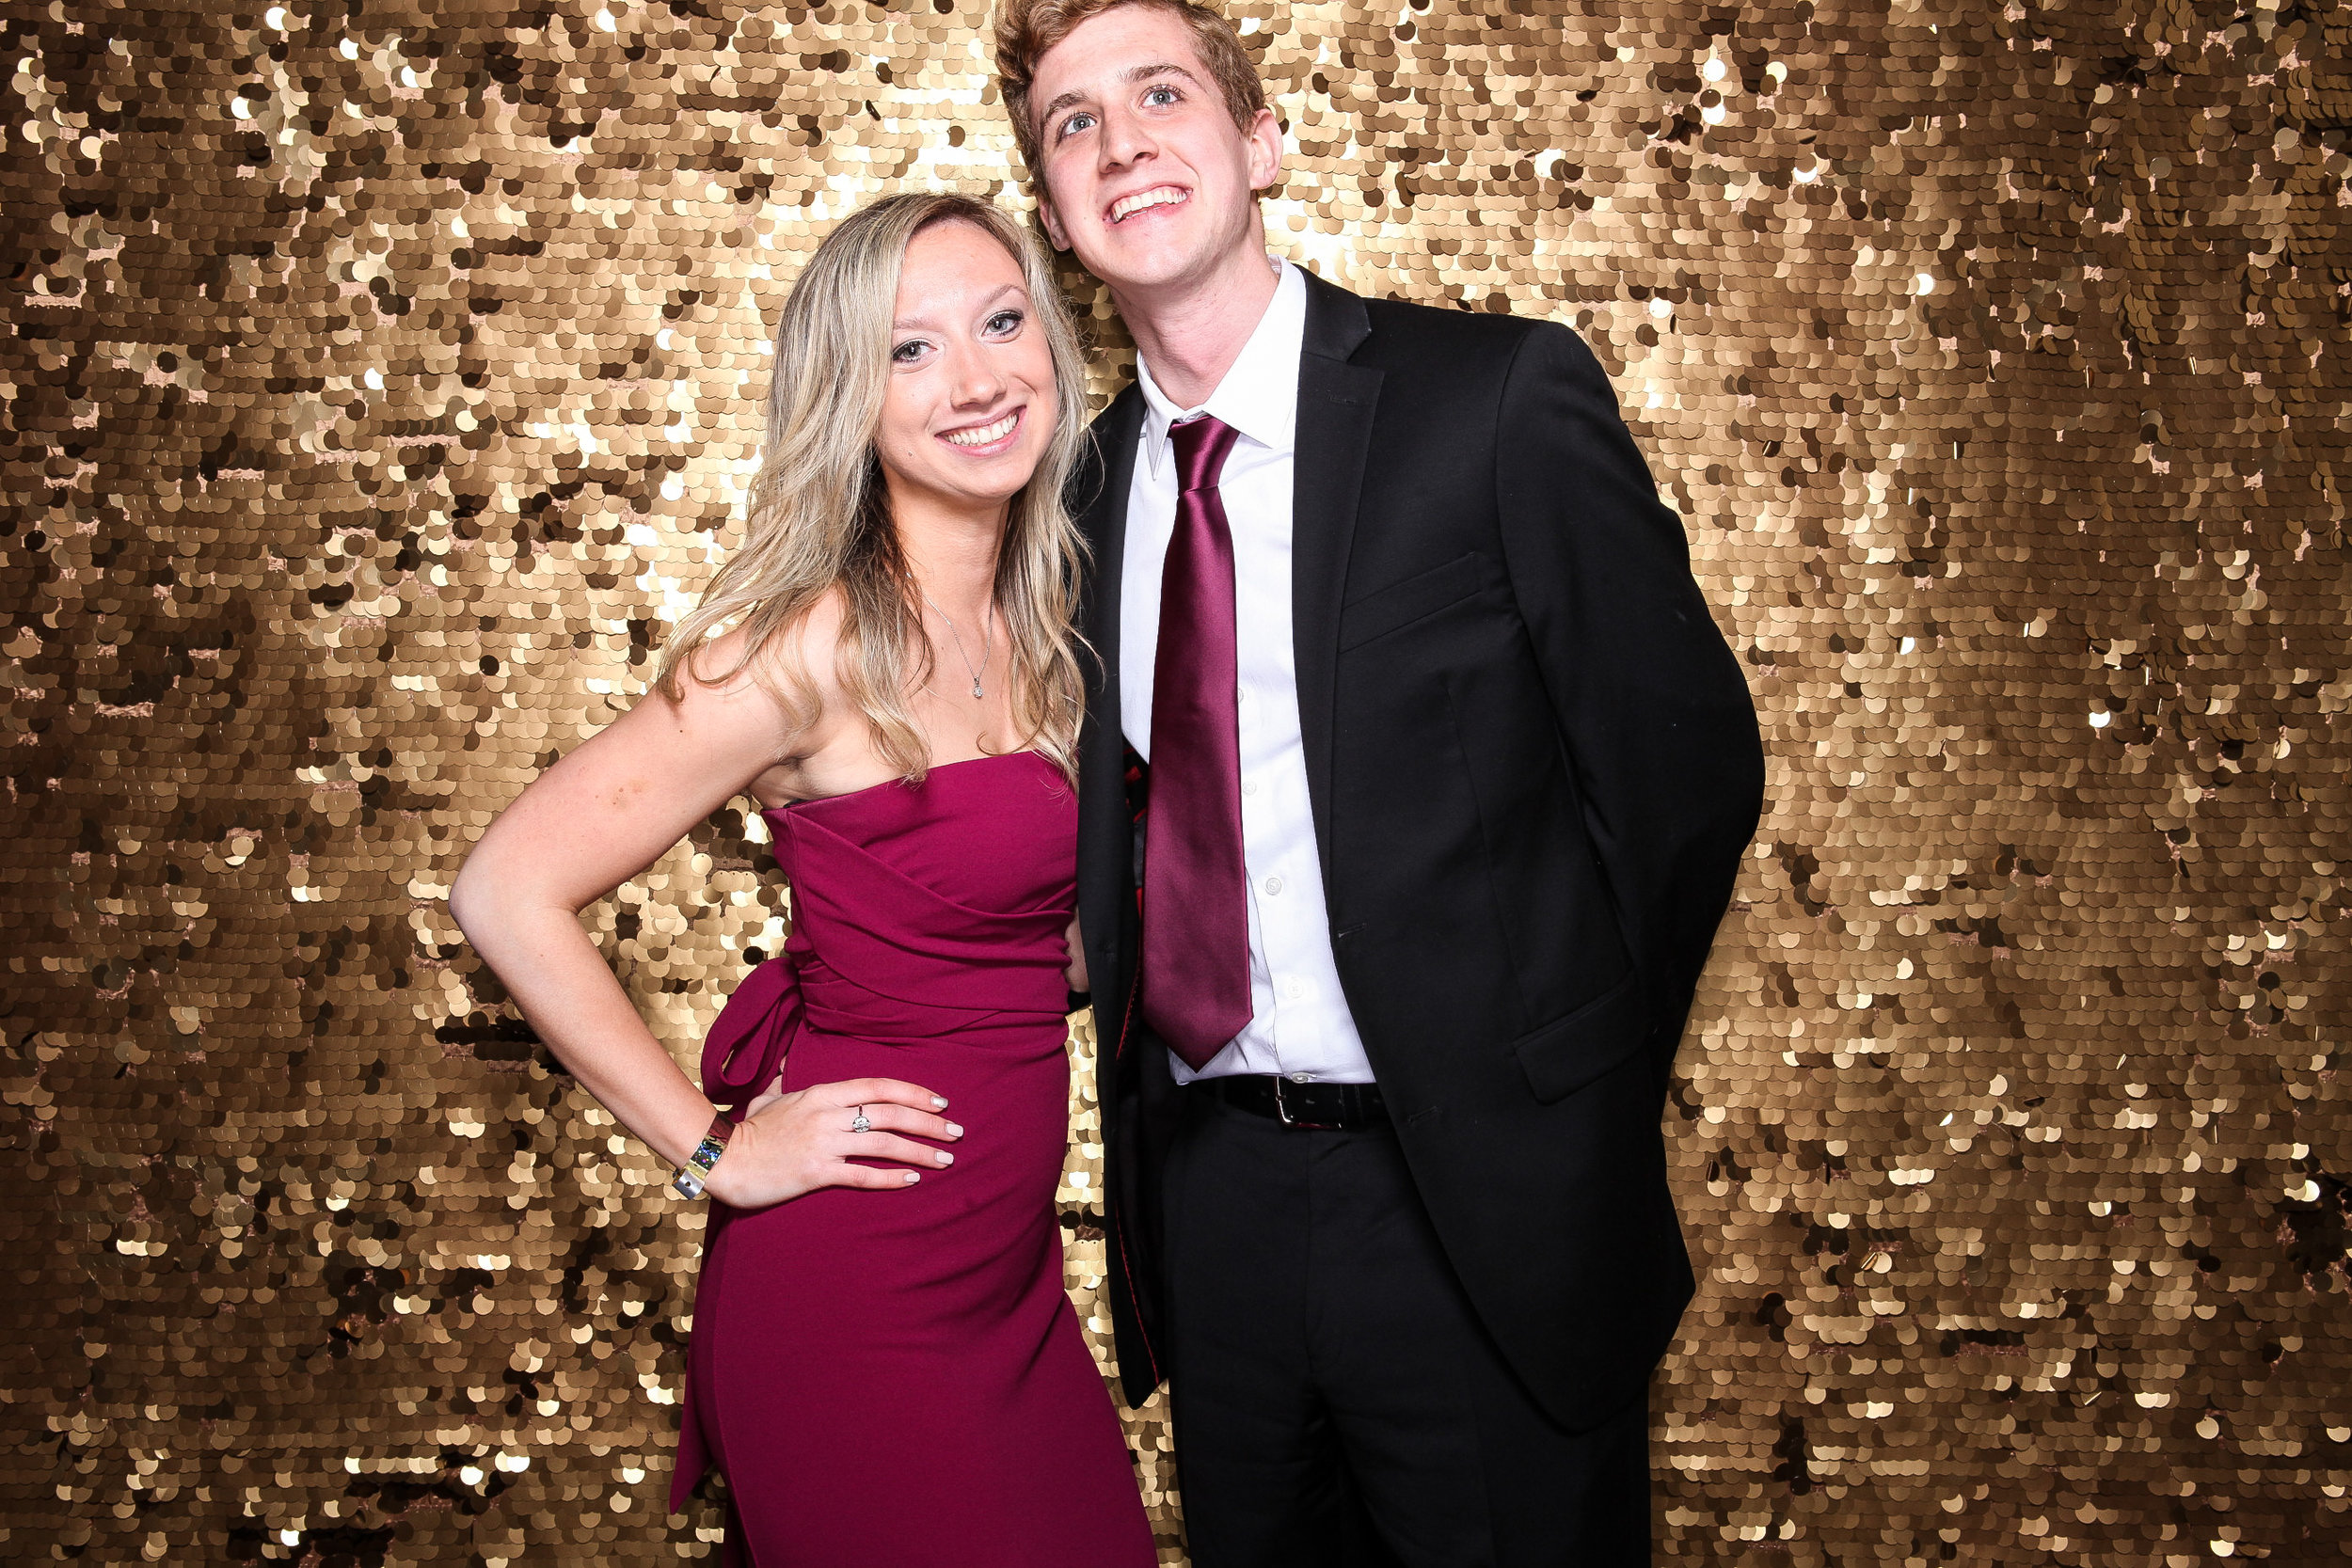 20190503_Adelphi_Senior_Formal-035.jpg